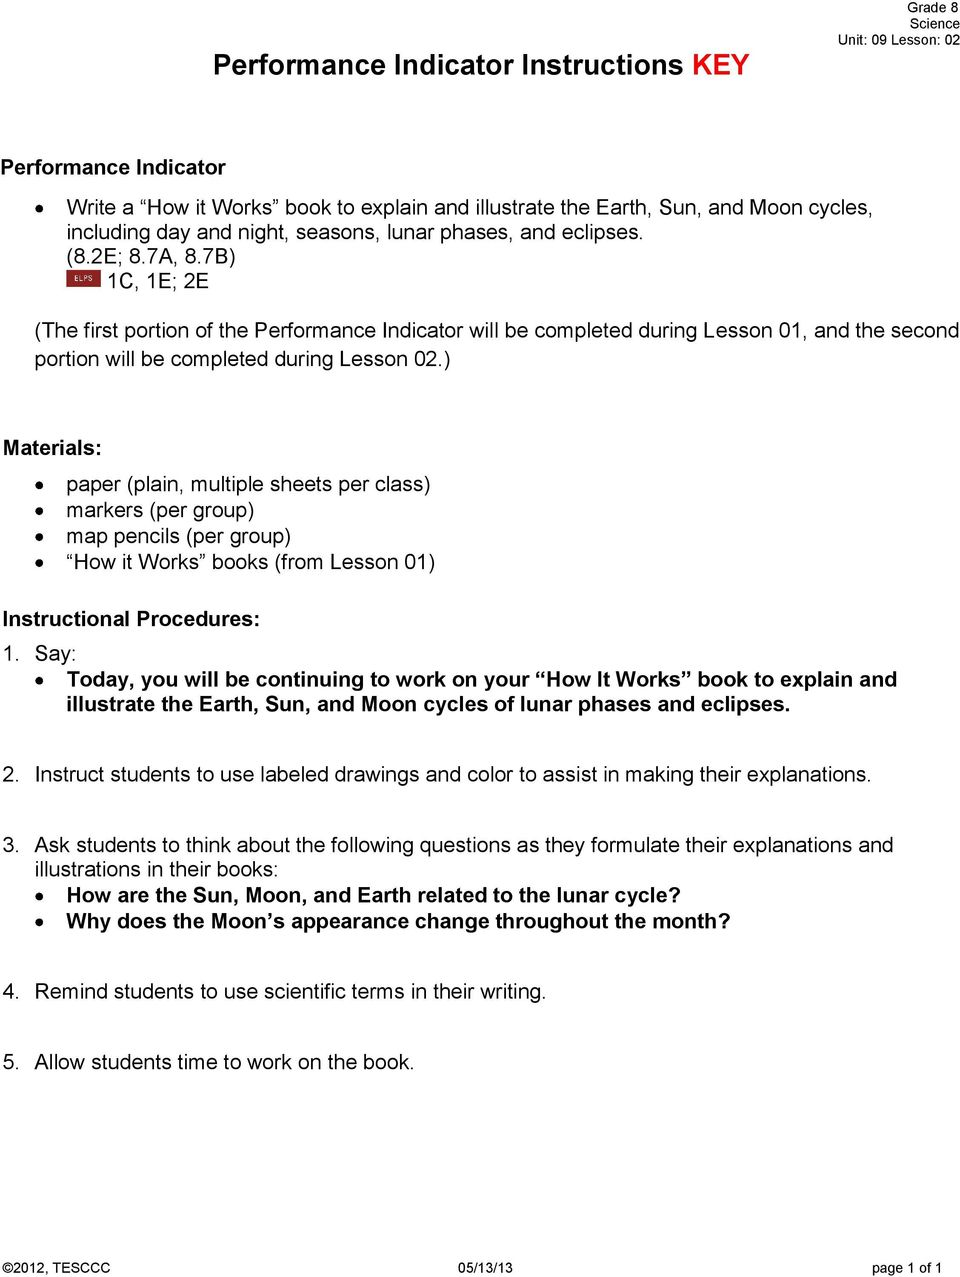 Science Grade 08 Unit 09 Exemplar Lesson 02 Phases And Eclipses Pdf Image Moonphasesdiagramjpg For Term Side Of Card Materials Paper Plain Multiple Sheets Per Class Markers Group